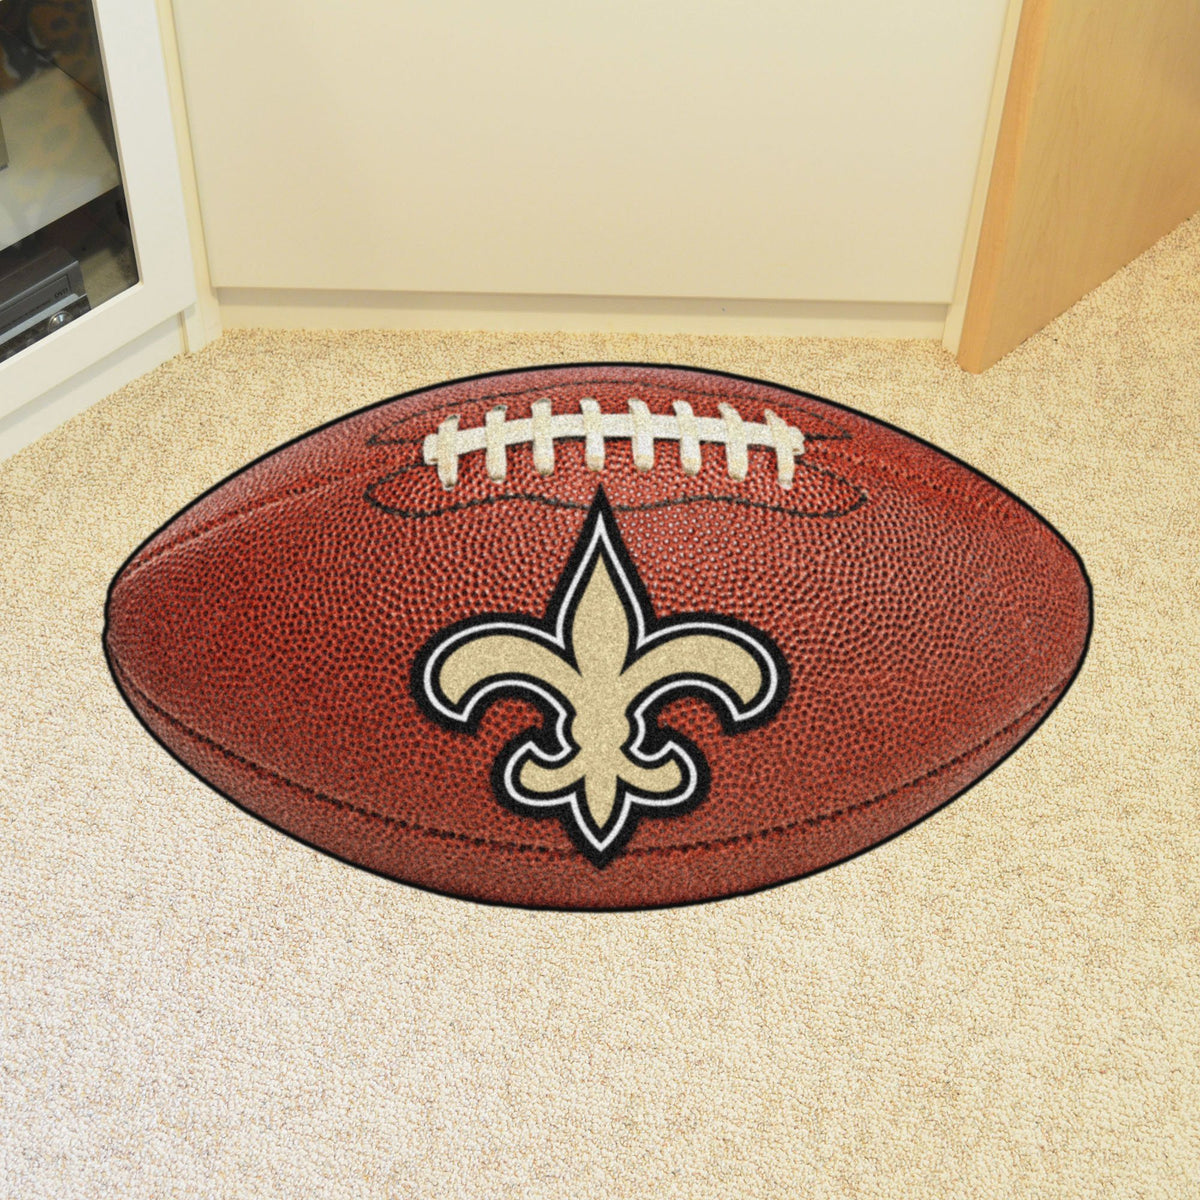 NFL - Football Mat NFL Mats, Custom Shape Rugs, Football Mat, NFL, Home Fan Mats New Orleans Saints